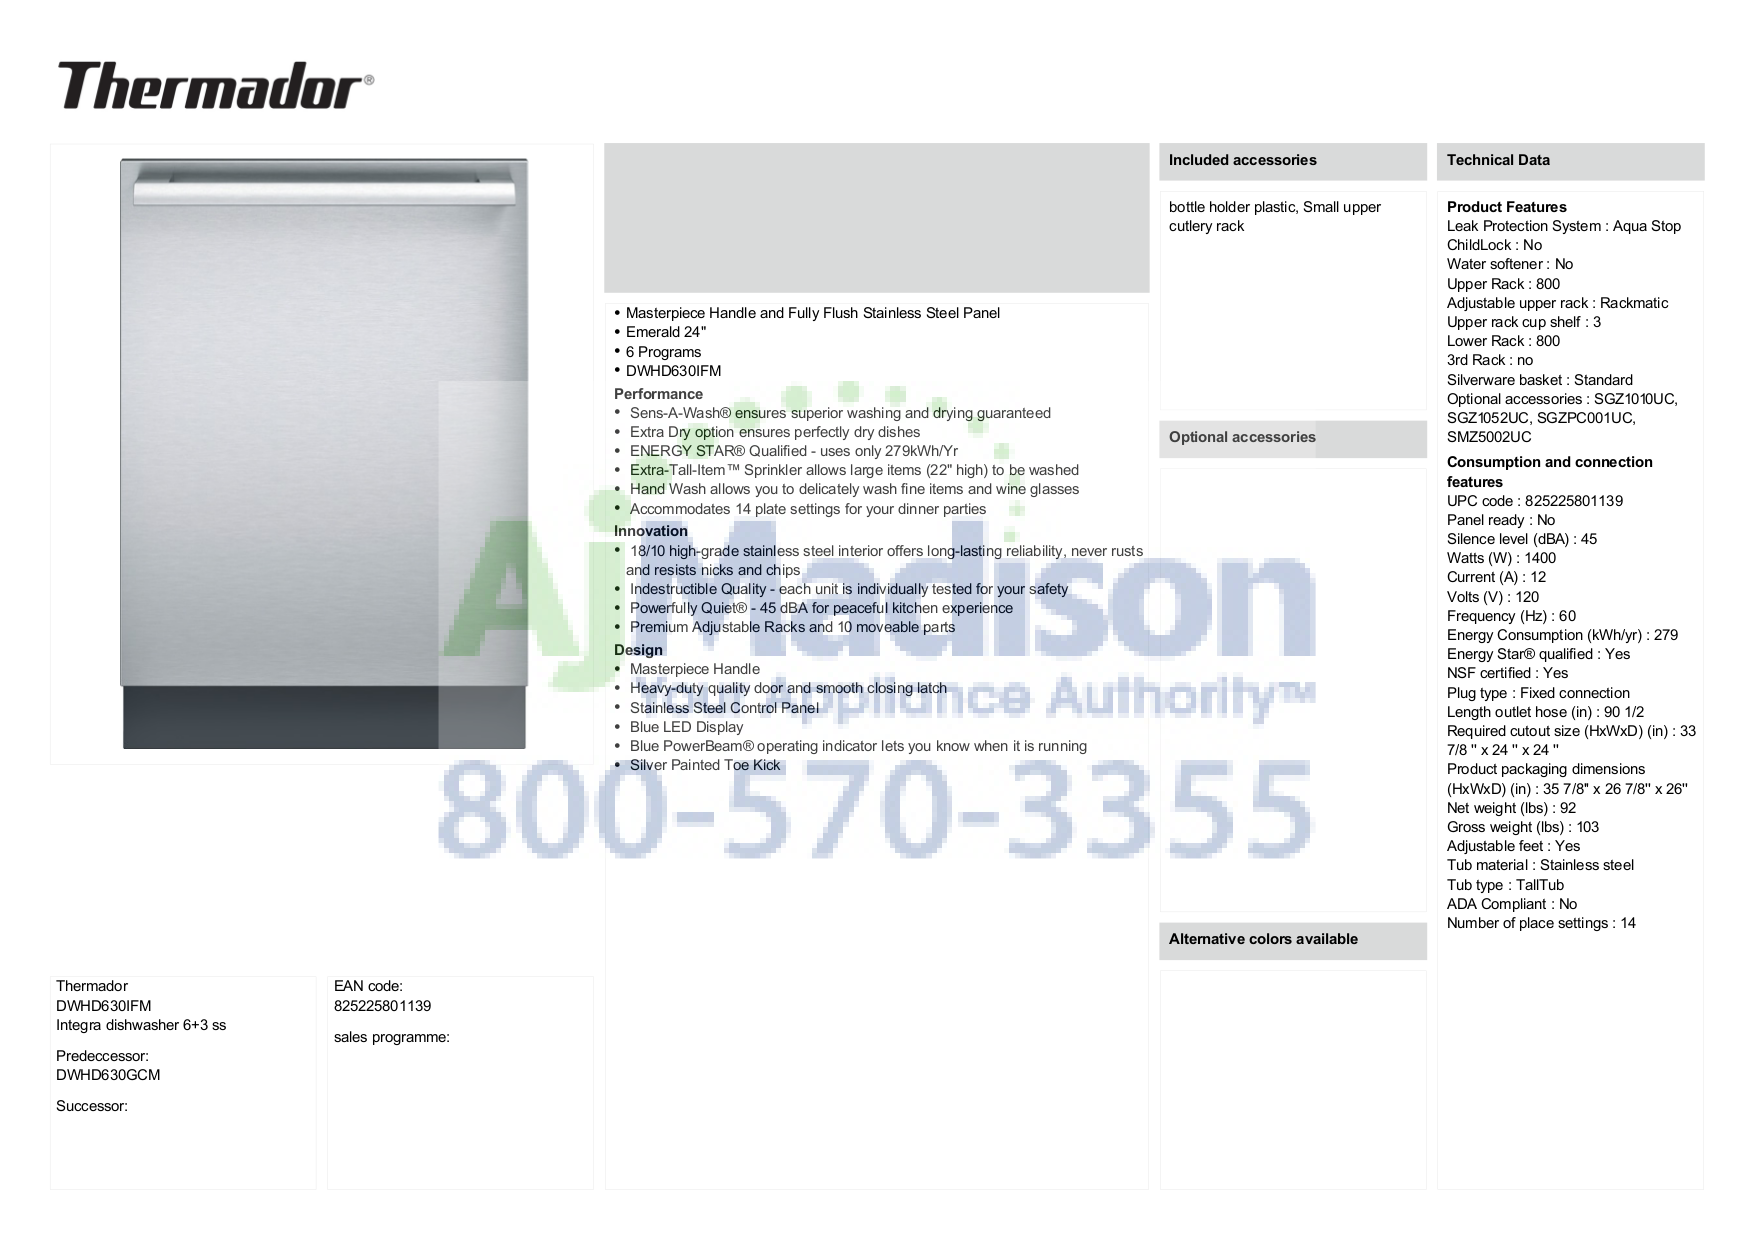 pdf for Thermador Dishwasher Masterpiece DWHD630GCM manual